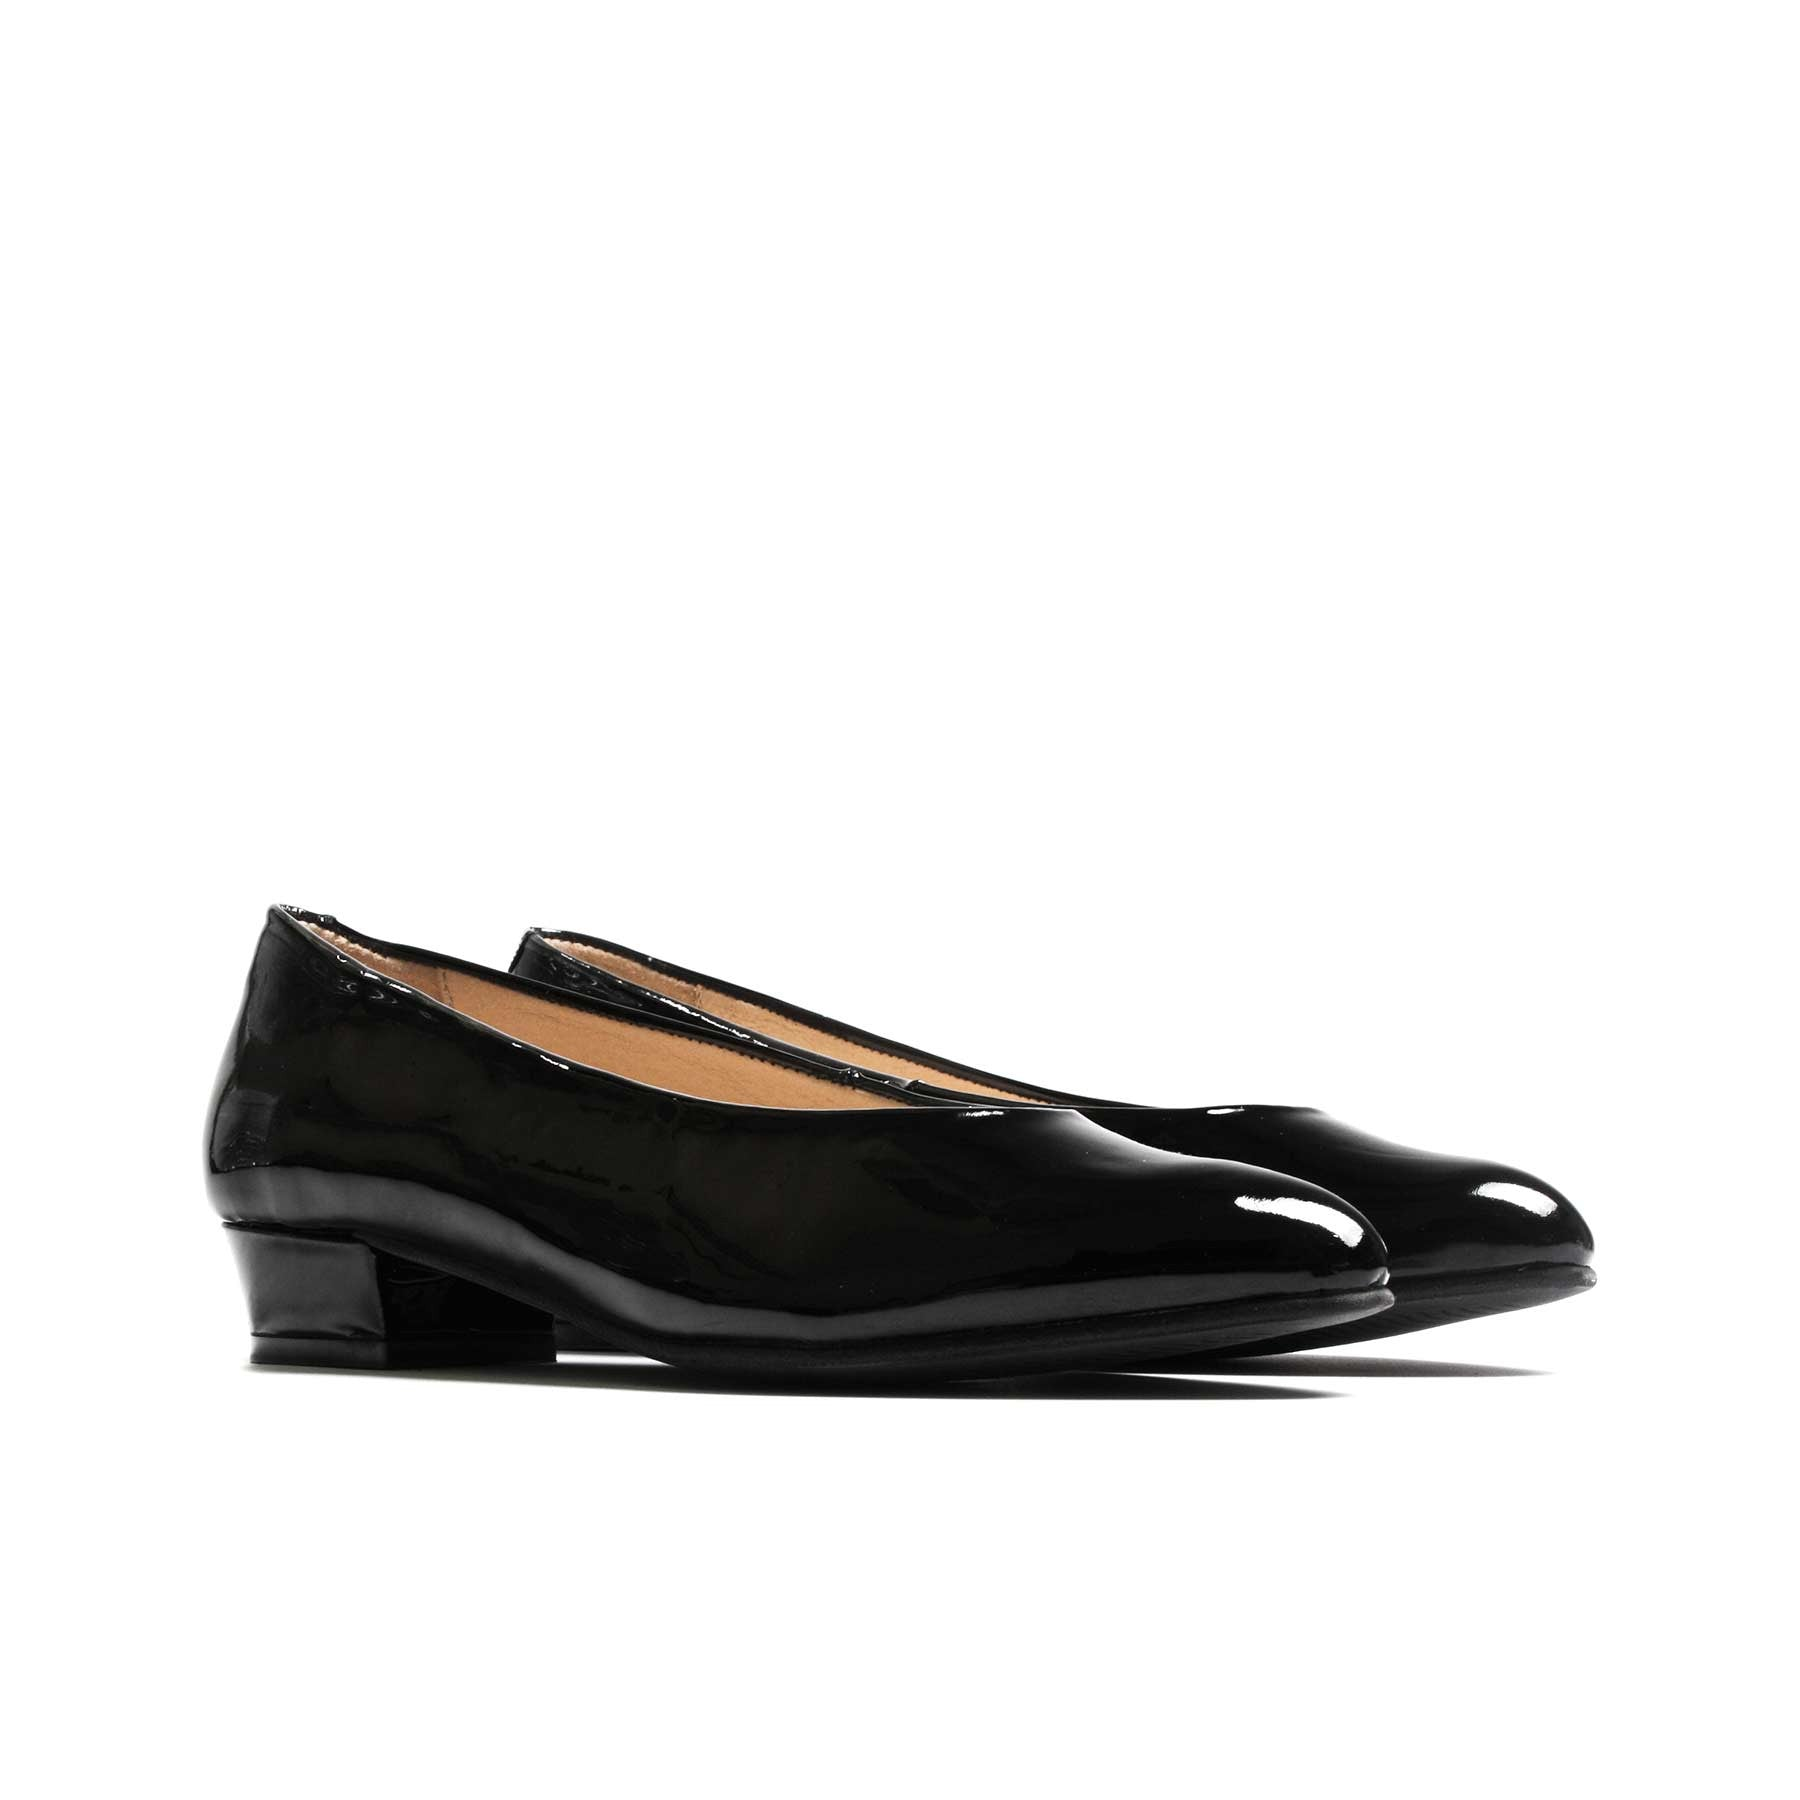 Pumps, Clau Black Patent Leather - Lintervalle shoes for woman